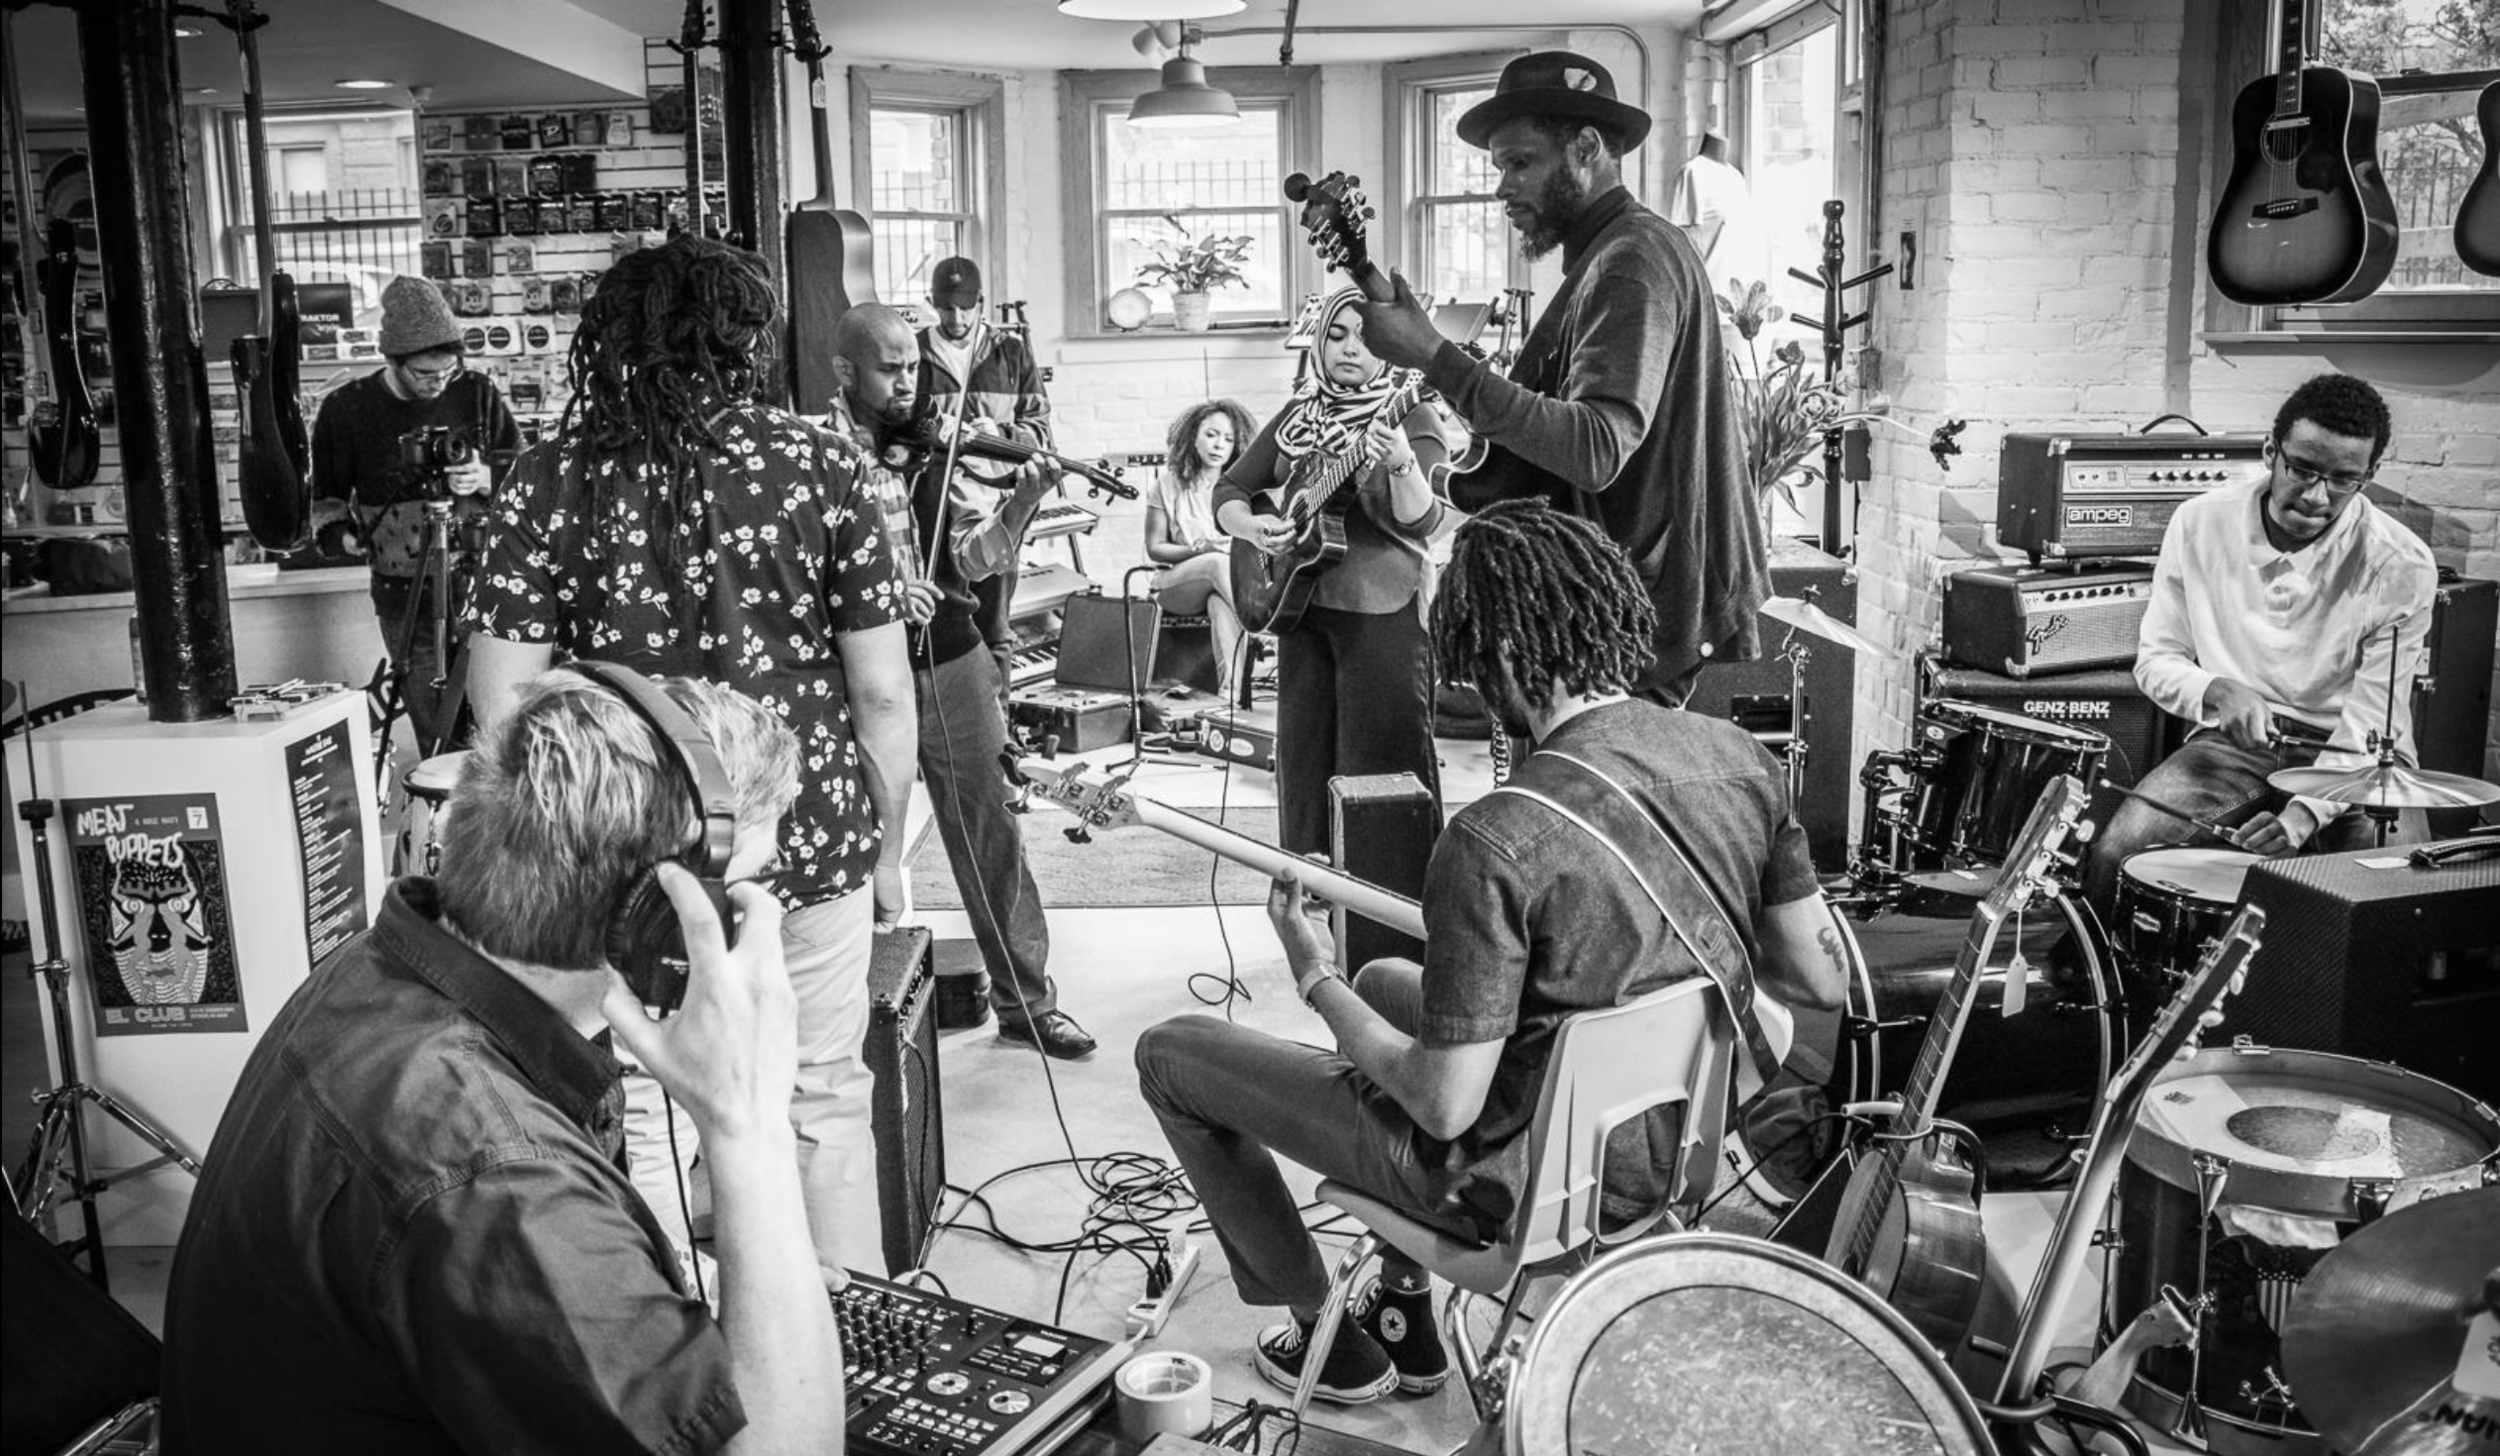 The River Street Anthology is creating a map in real time of the Michigan musical landscape. Lu Fuki & Divine Providence recorded with them in 2016 at the Third Wave Music Store. The project seeks to collect, preserve, and make accessible music covering the gamut of genres, cultures, and ages Michigan music.